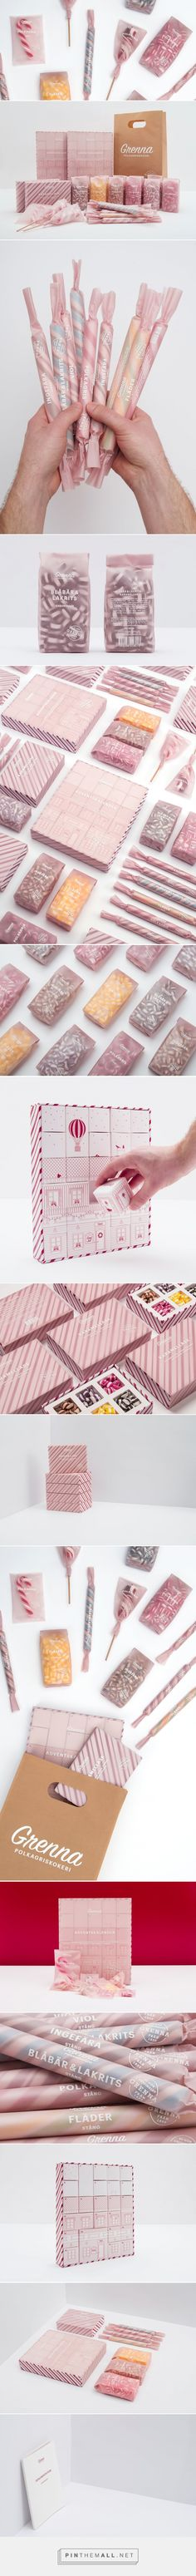 Candy Packaging Grenna Polkagriskokeri - Mindsparkle Mag - created via https://pinthemall.net